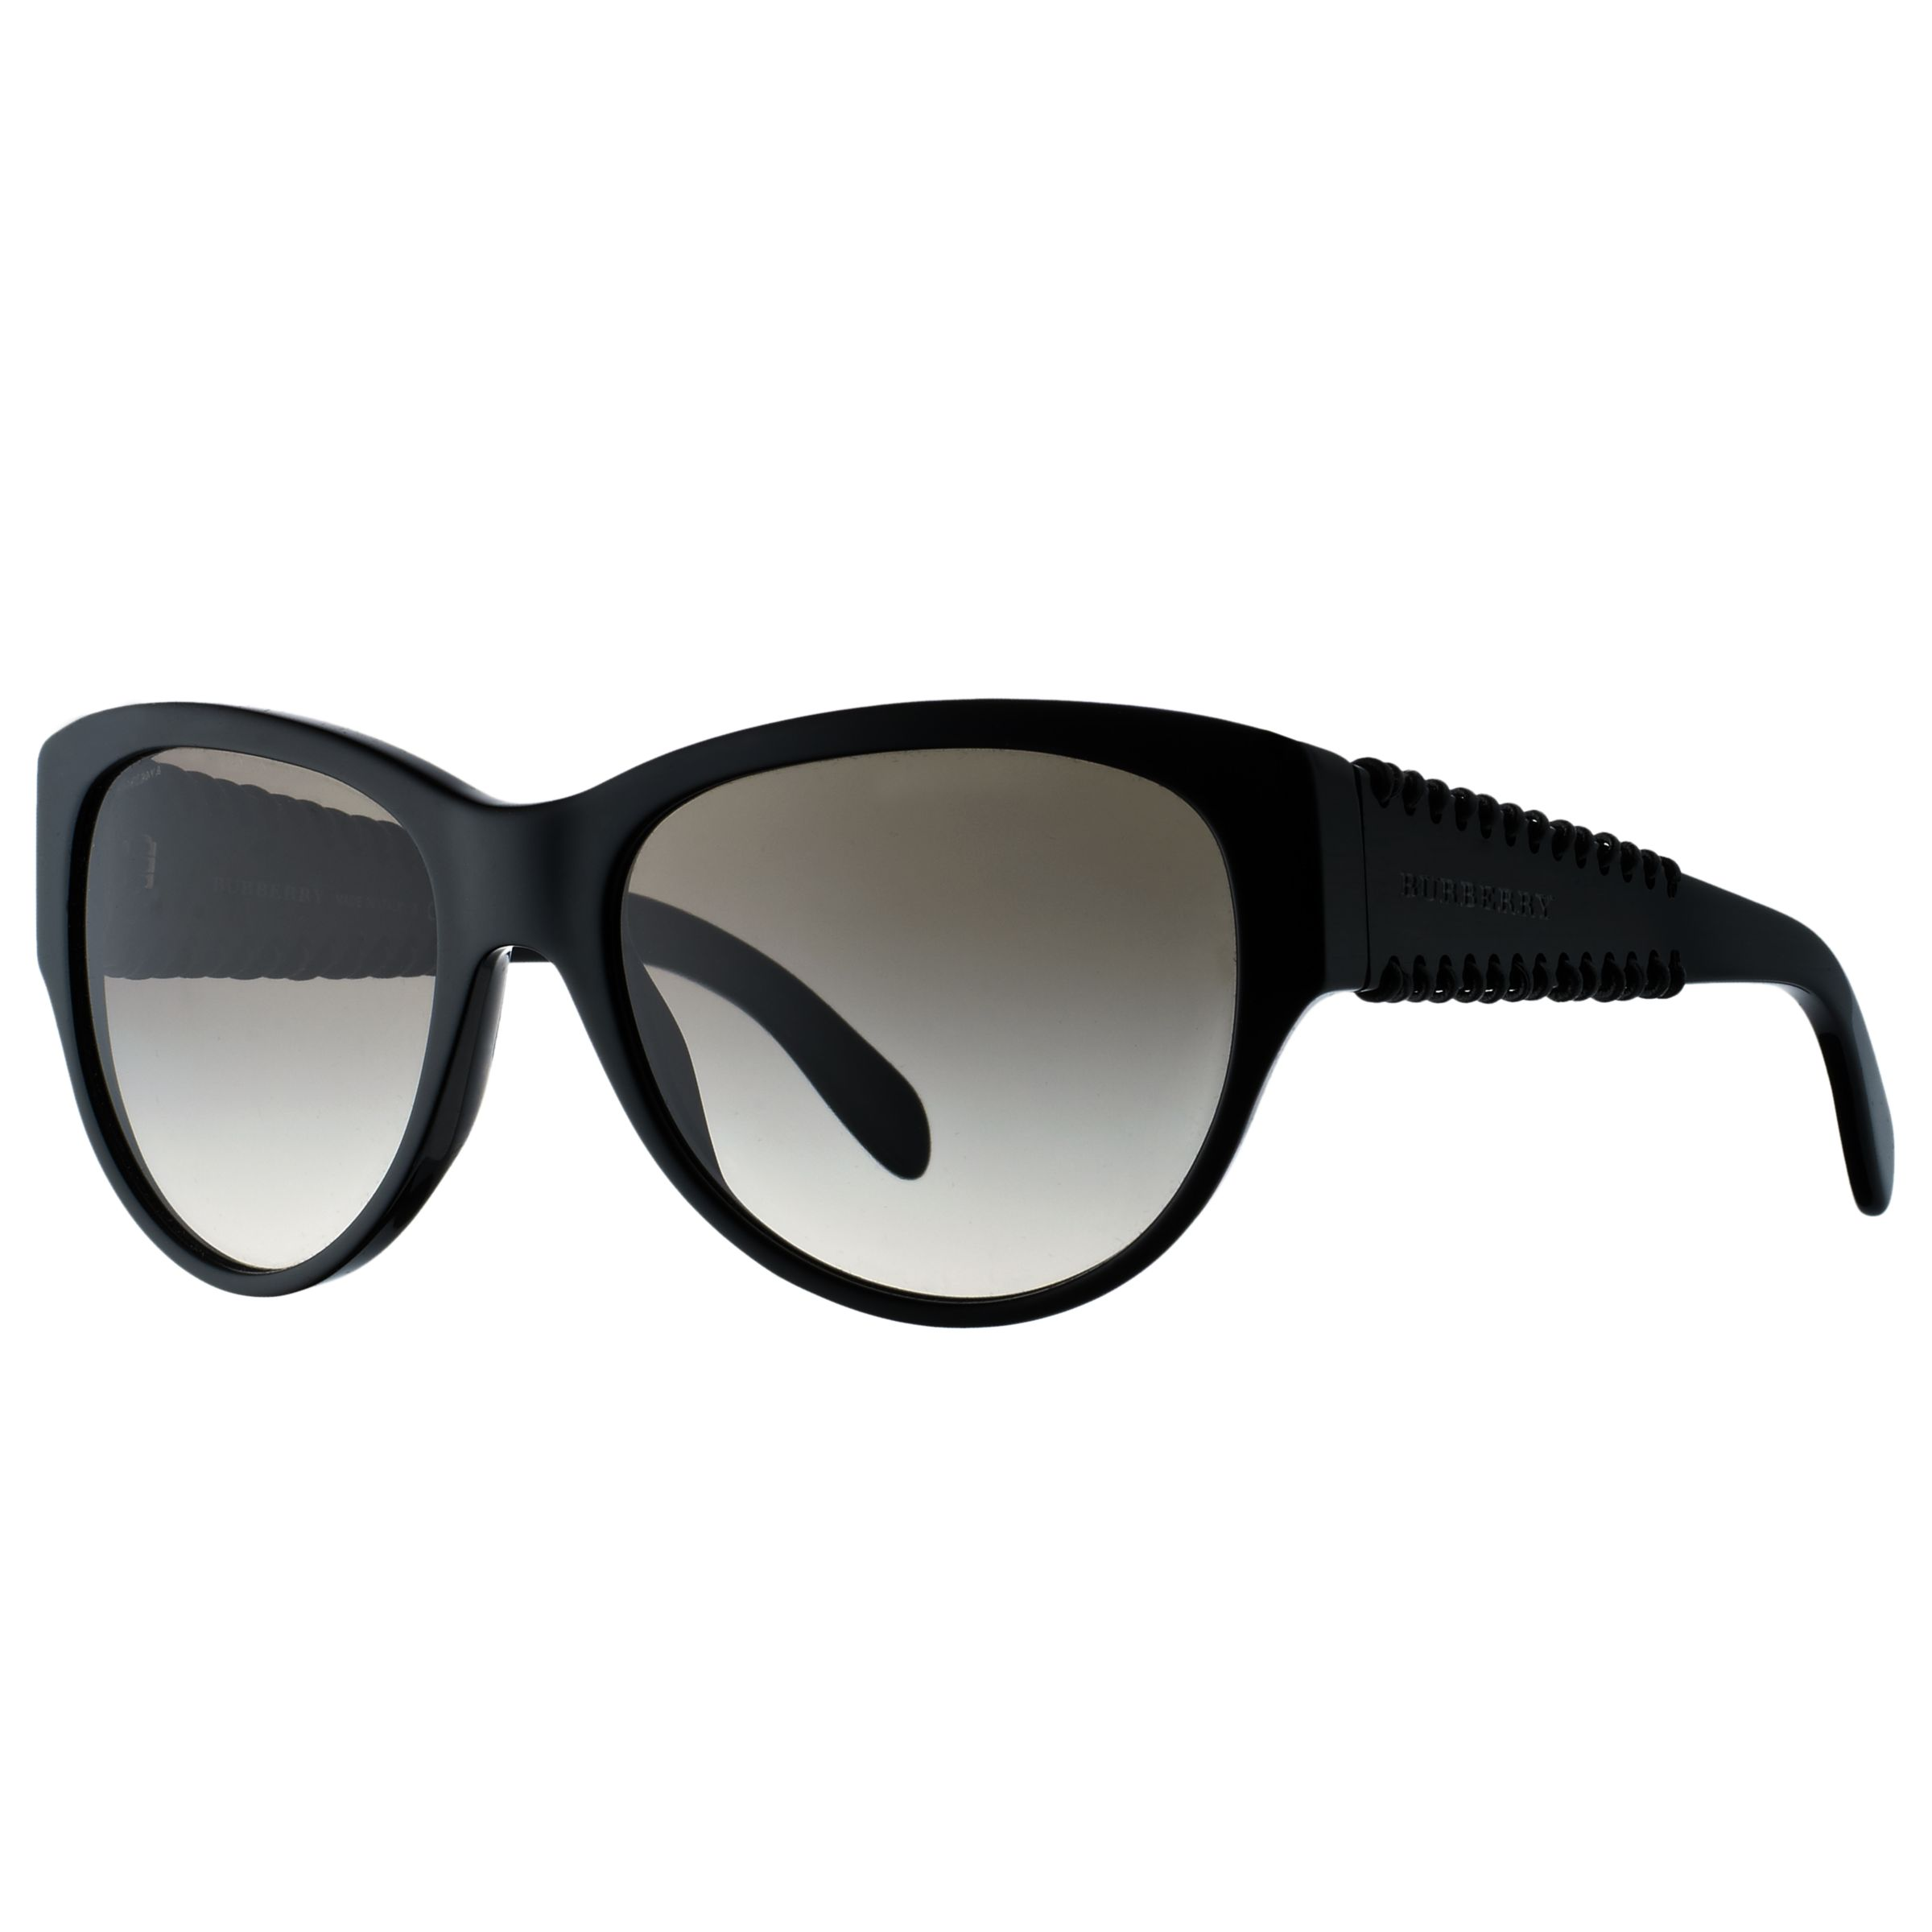 Burberry Catseye Whip Sunglasses, Black